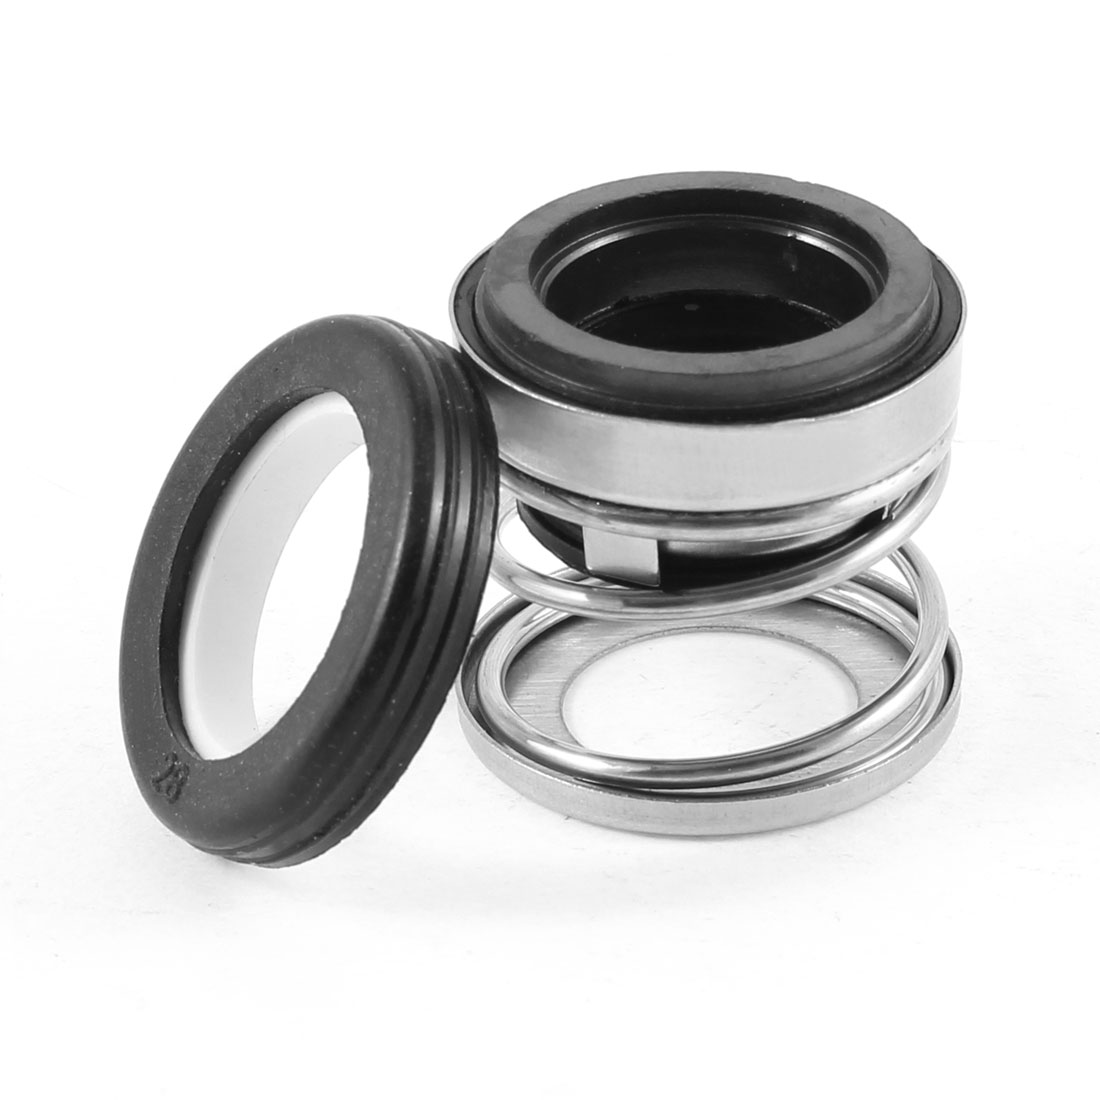 15mm x 28mm x 35mm Mechanical Water Pump Shaft Seal Repair Parts